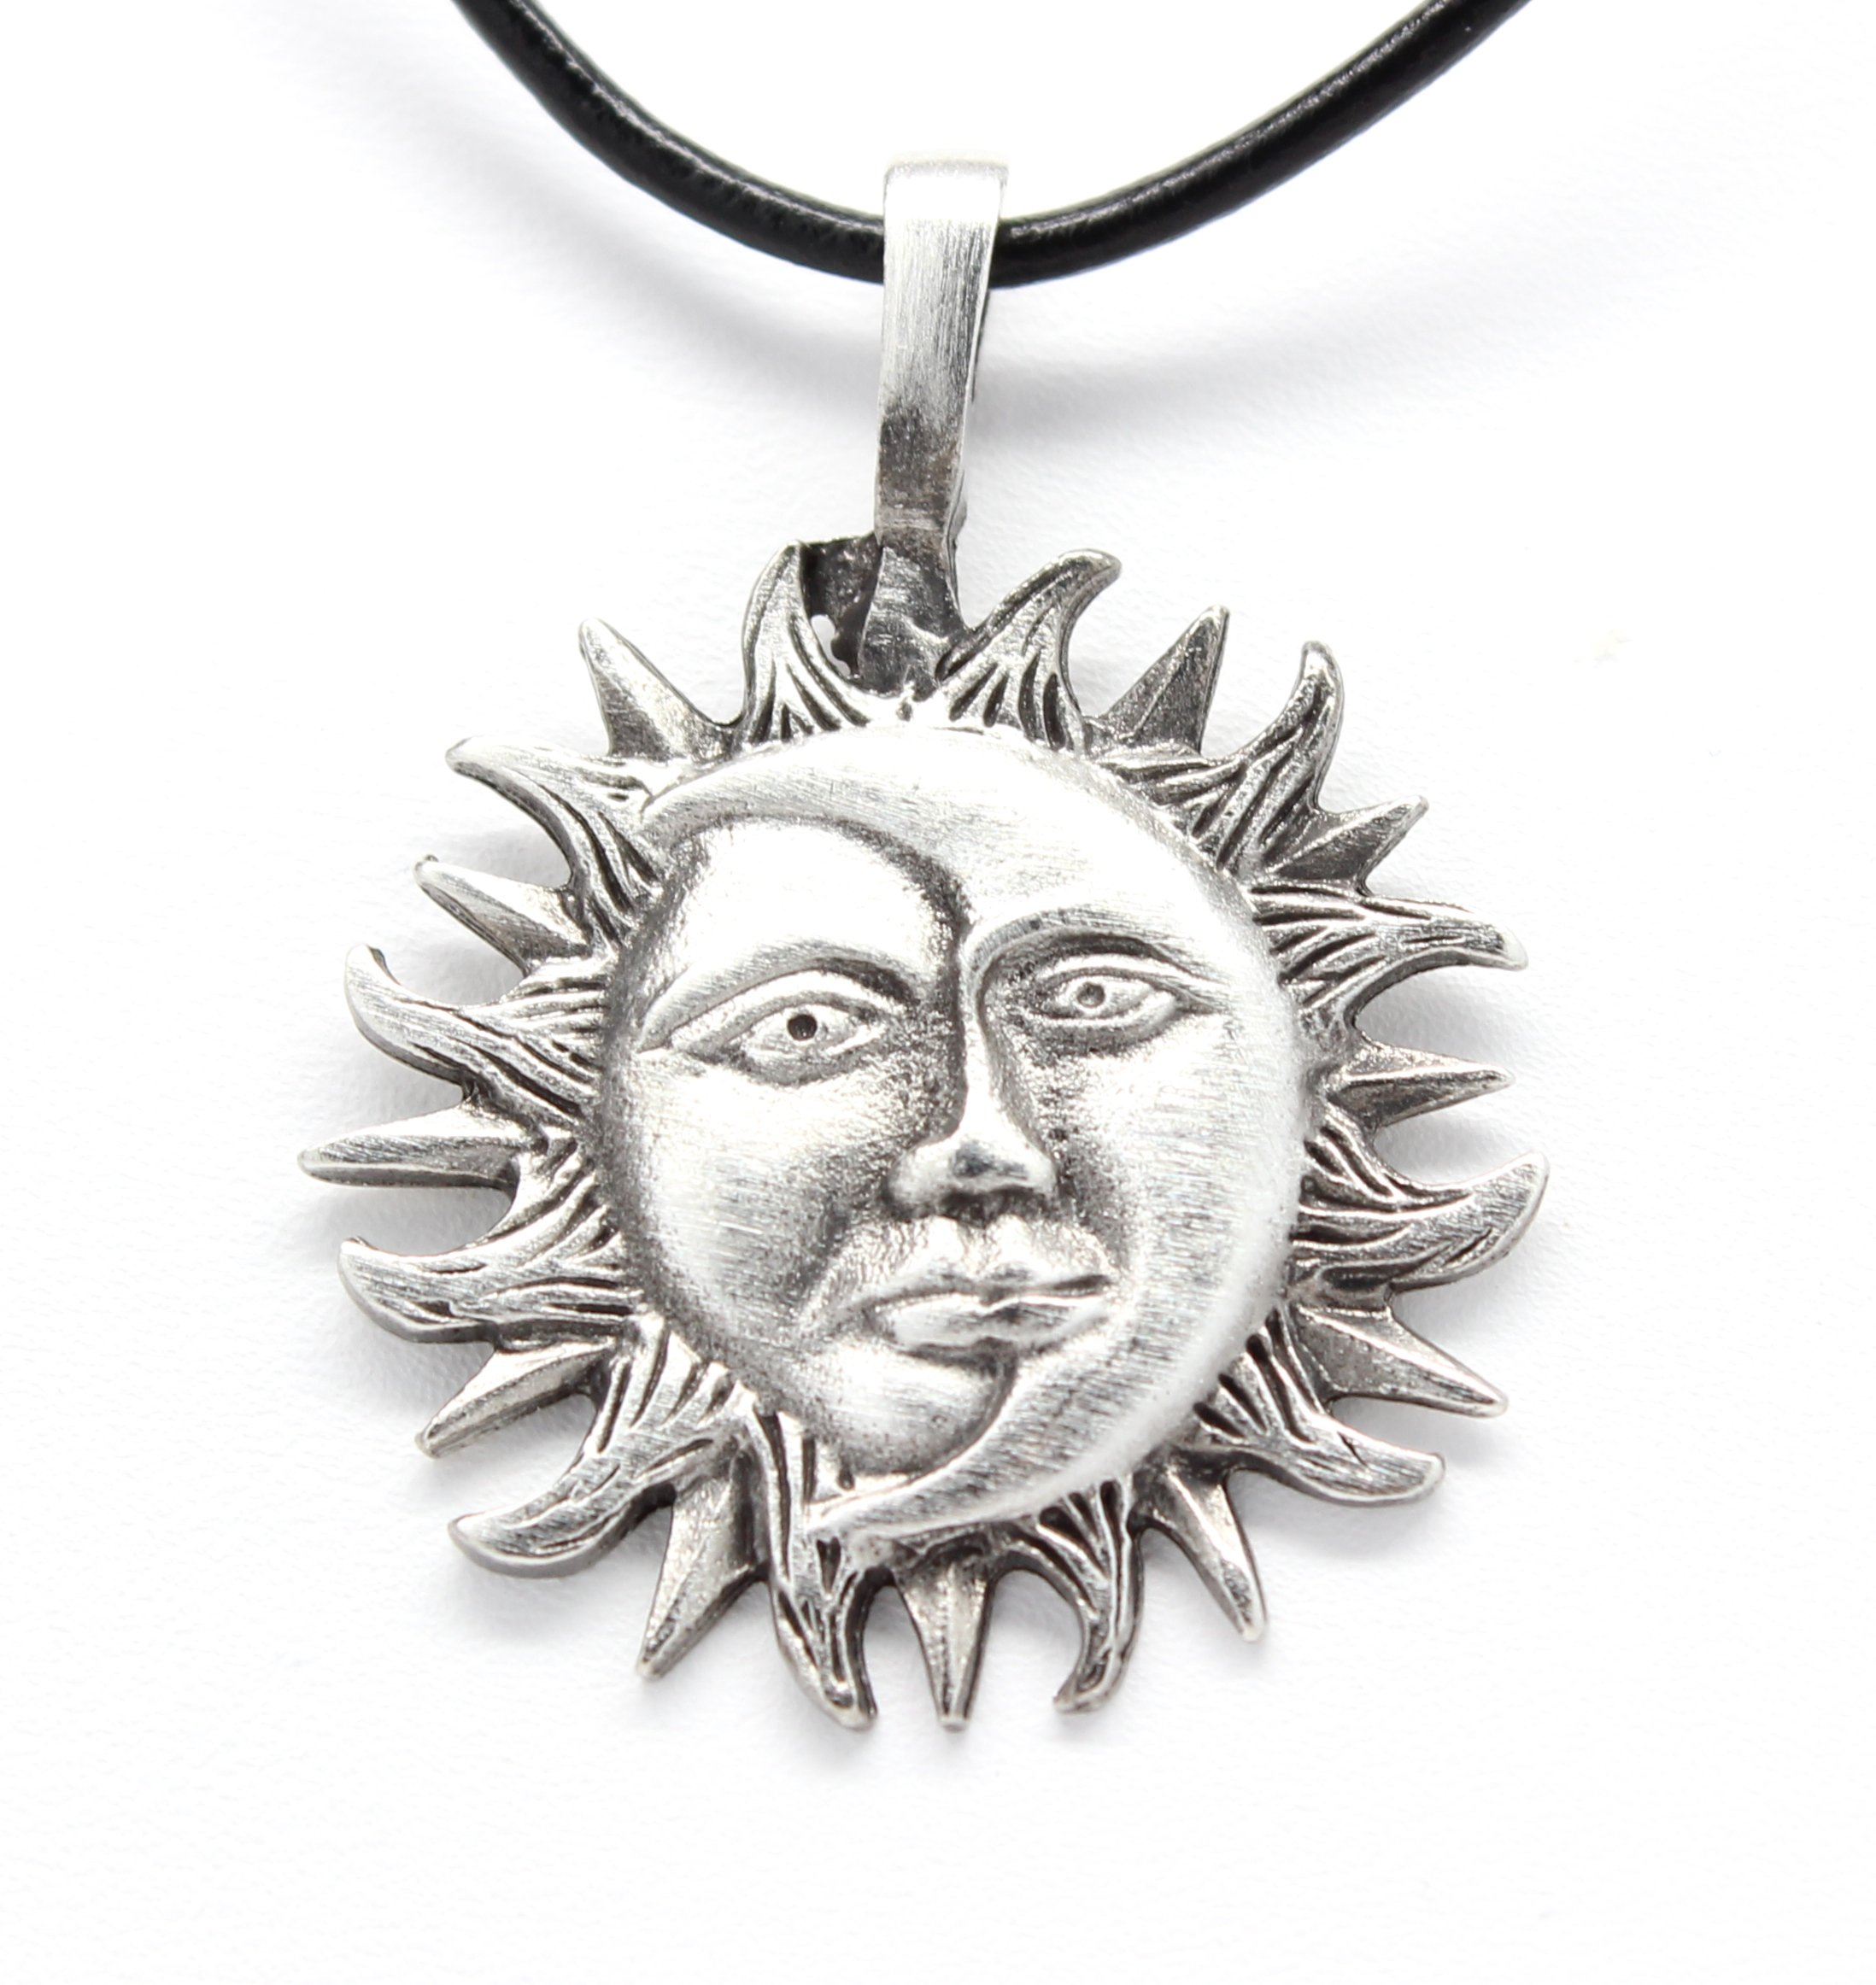 Trilogy Jewelry Pewter Sun Moon Face Celestial Lunar Solar Pendant, Black Necklace Cord with Clasp